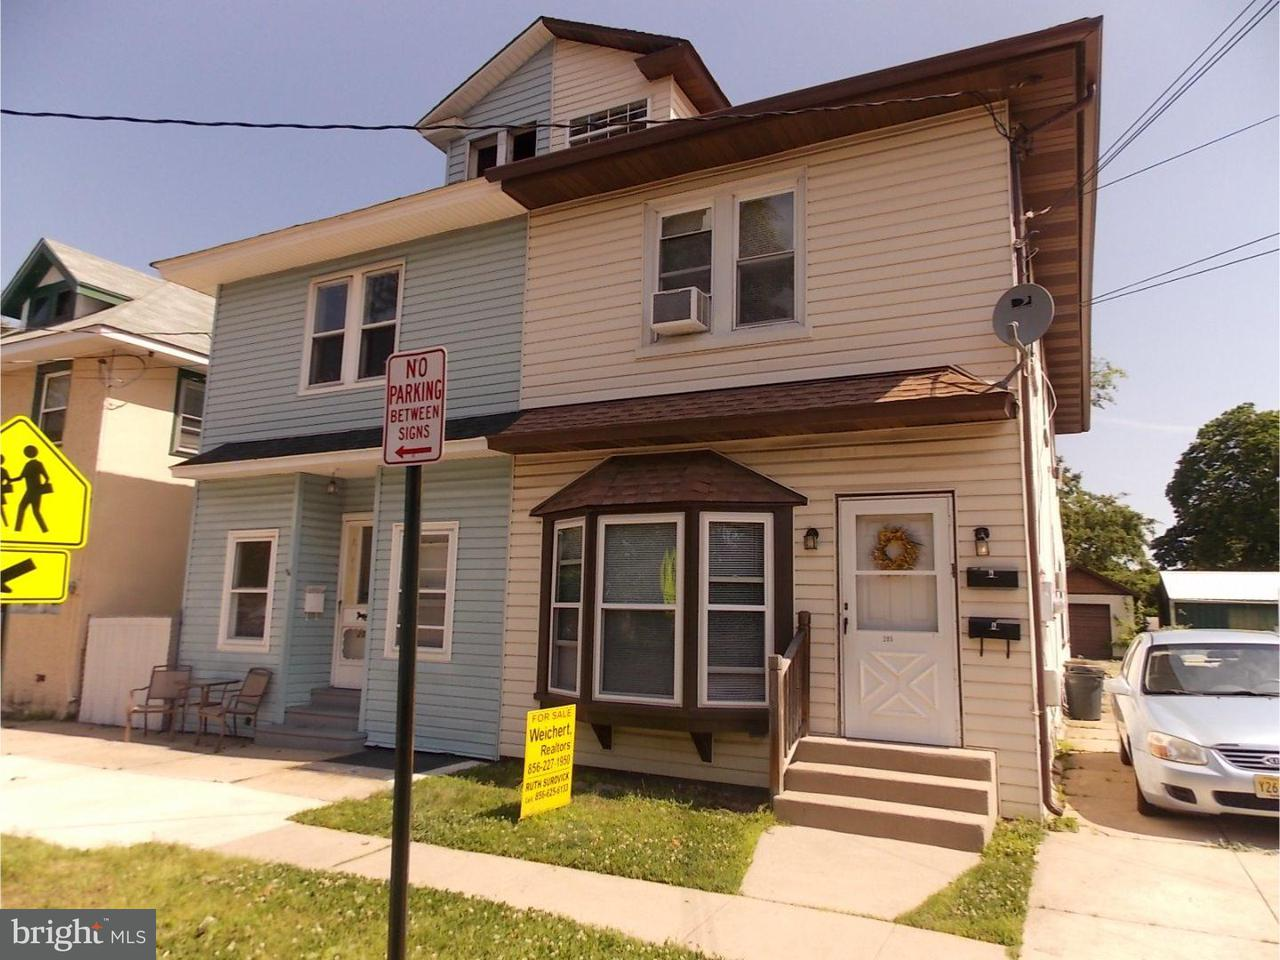 Duplex for Sale at 205 BROWNING Lane Brooklawn, New Jersey 08030 United States